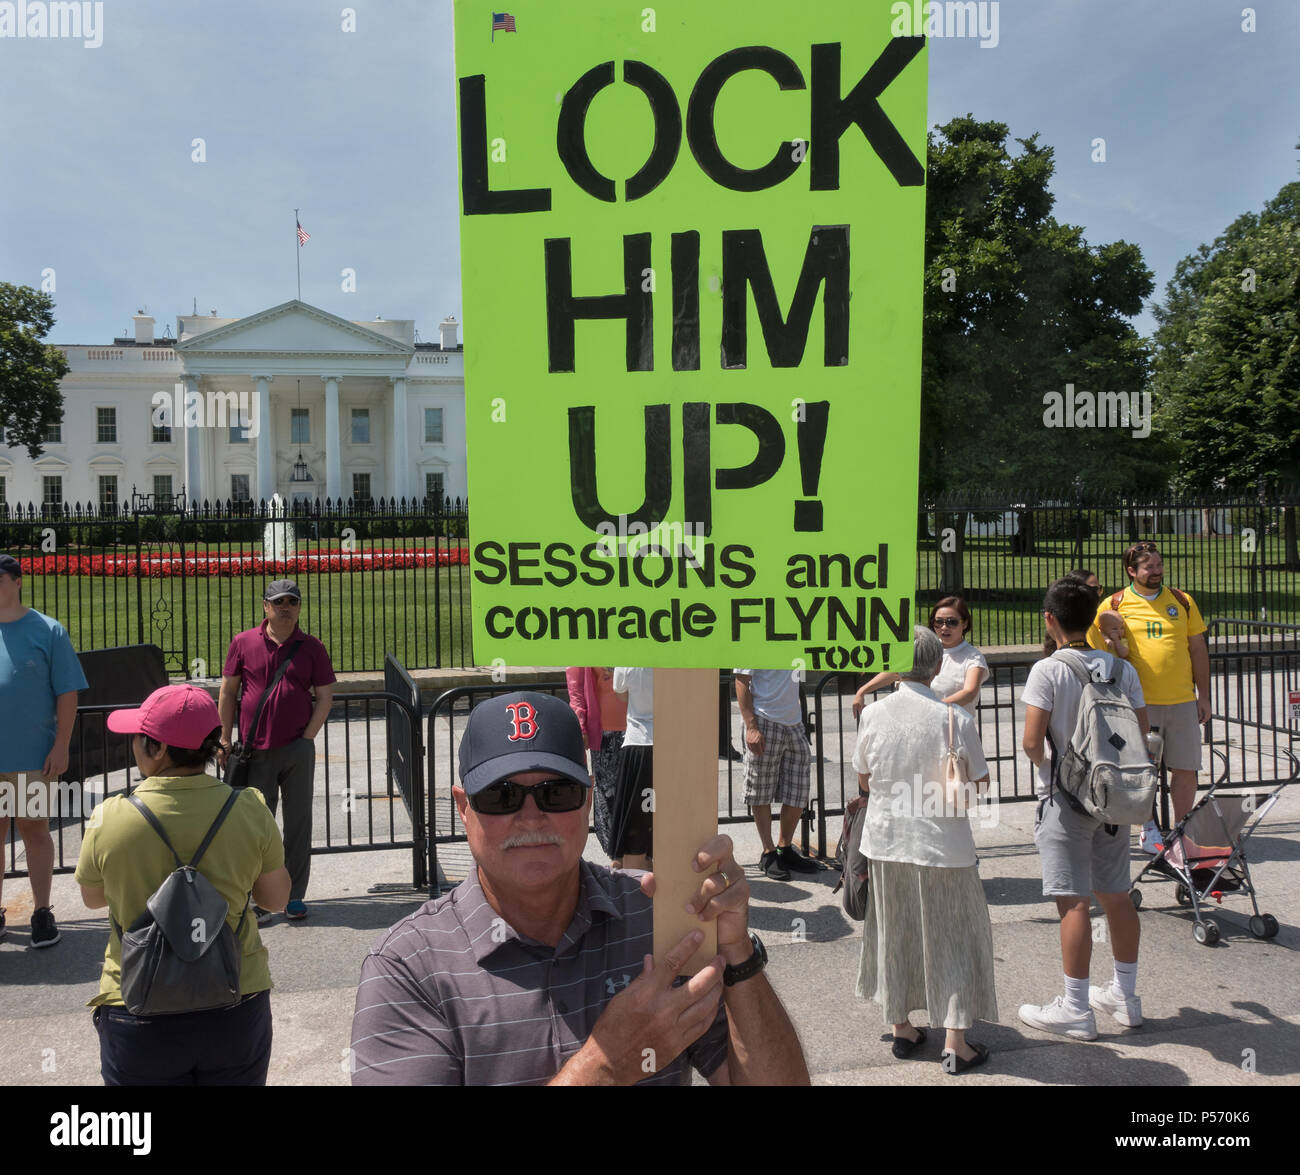 Protester White House - Lock Him Up (Trump) Sessions, Flynn. Demonstrating against Pres. Trump and accomplices in collusion. Washington, June 25, 2017 - Stock Image